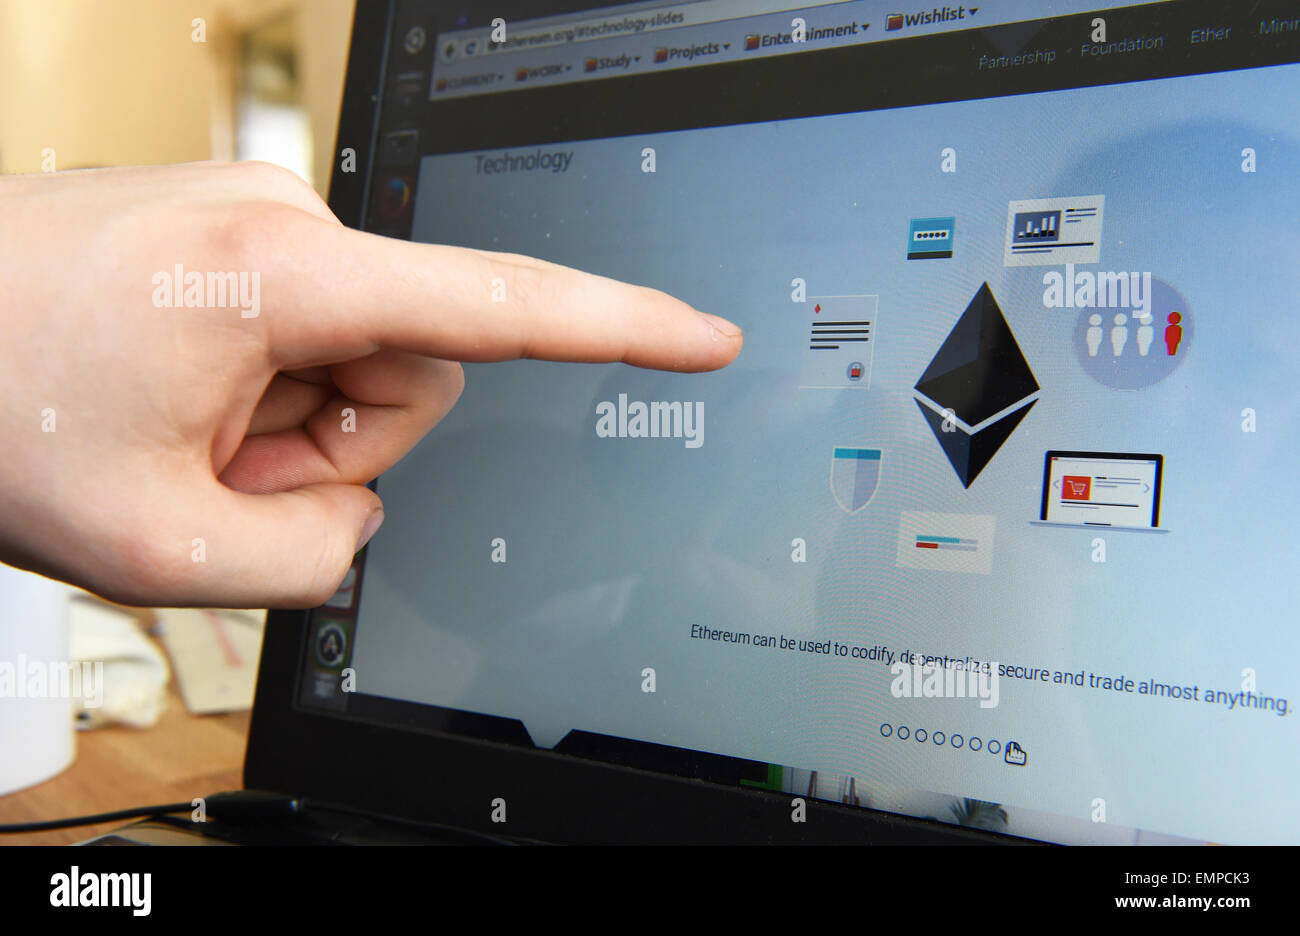 The technology of the Ethereum platform is represented on a computer screen at the Ethereum DEV offices in Berlin, - Stock Image